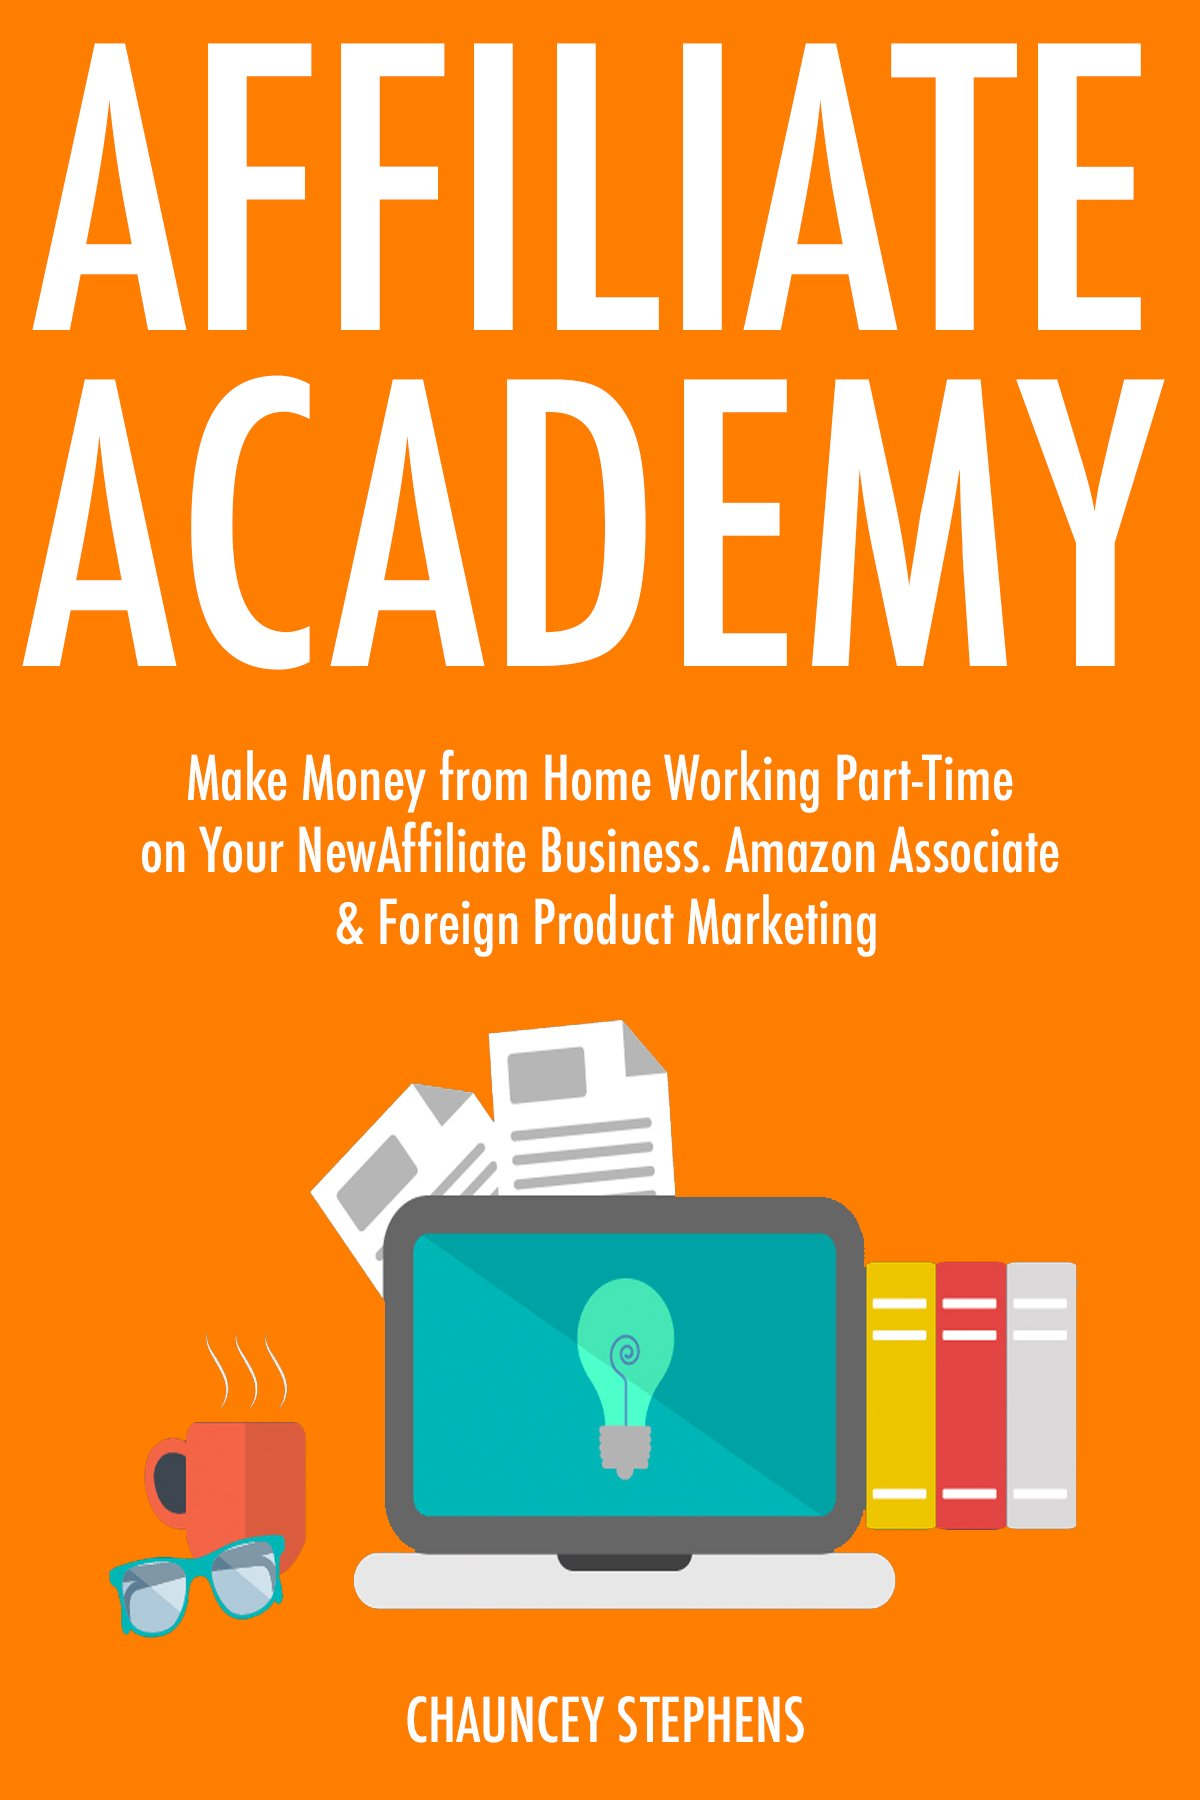 Affiliate Academy (Duo Training): Make Money from Home Working Part-Time on Your New Affiliate Business. Amazon Associate & Foreign Product Marketing